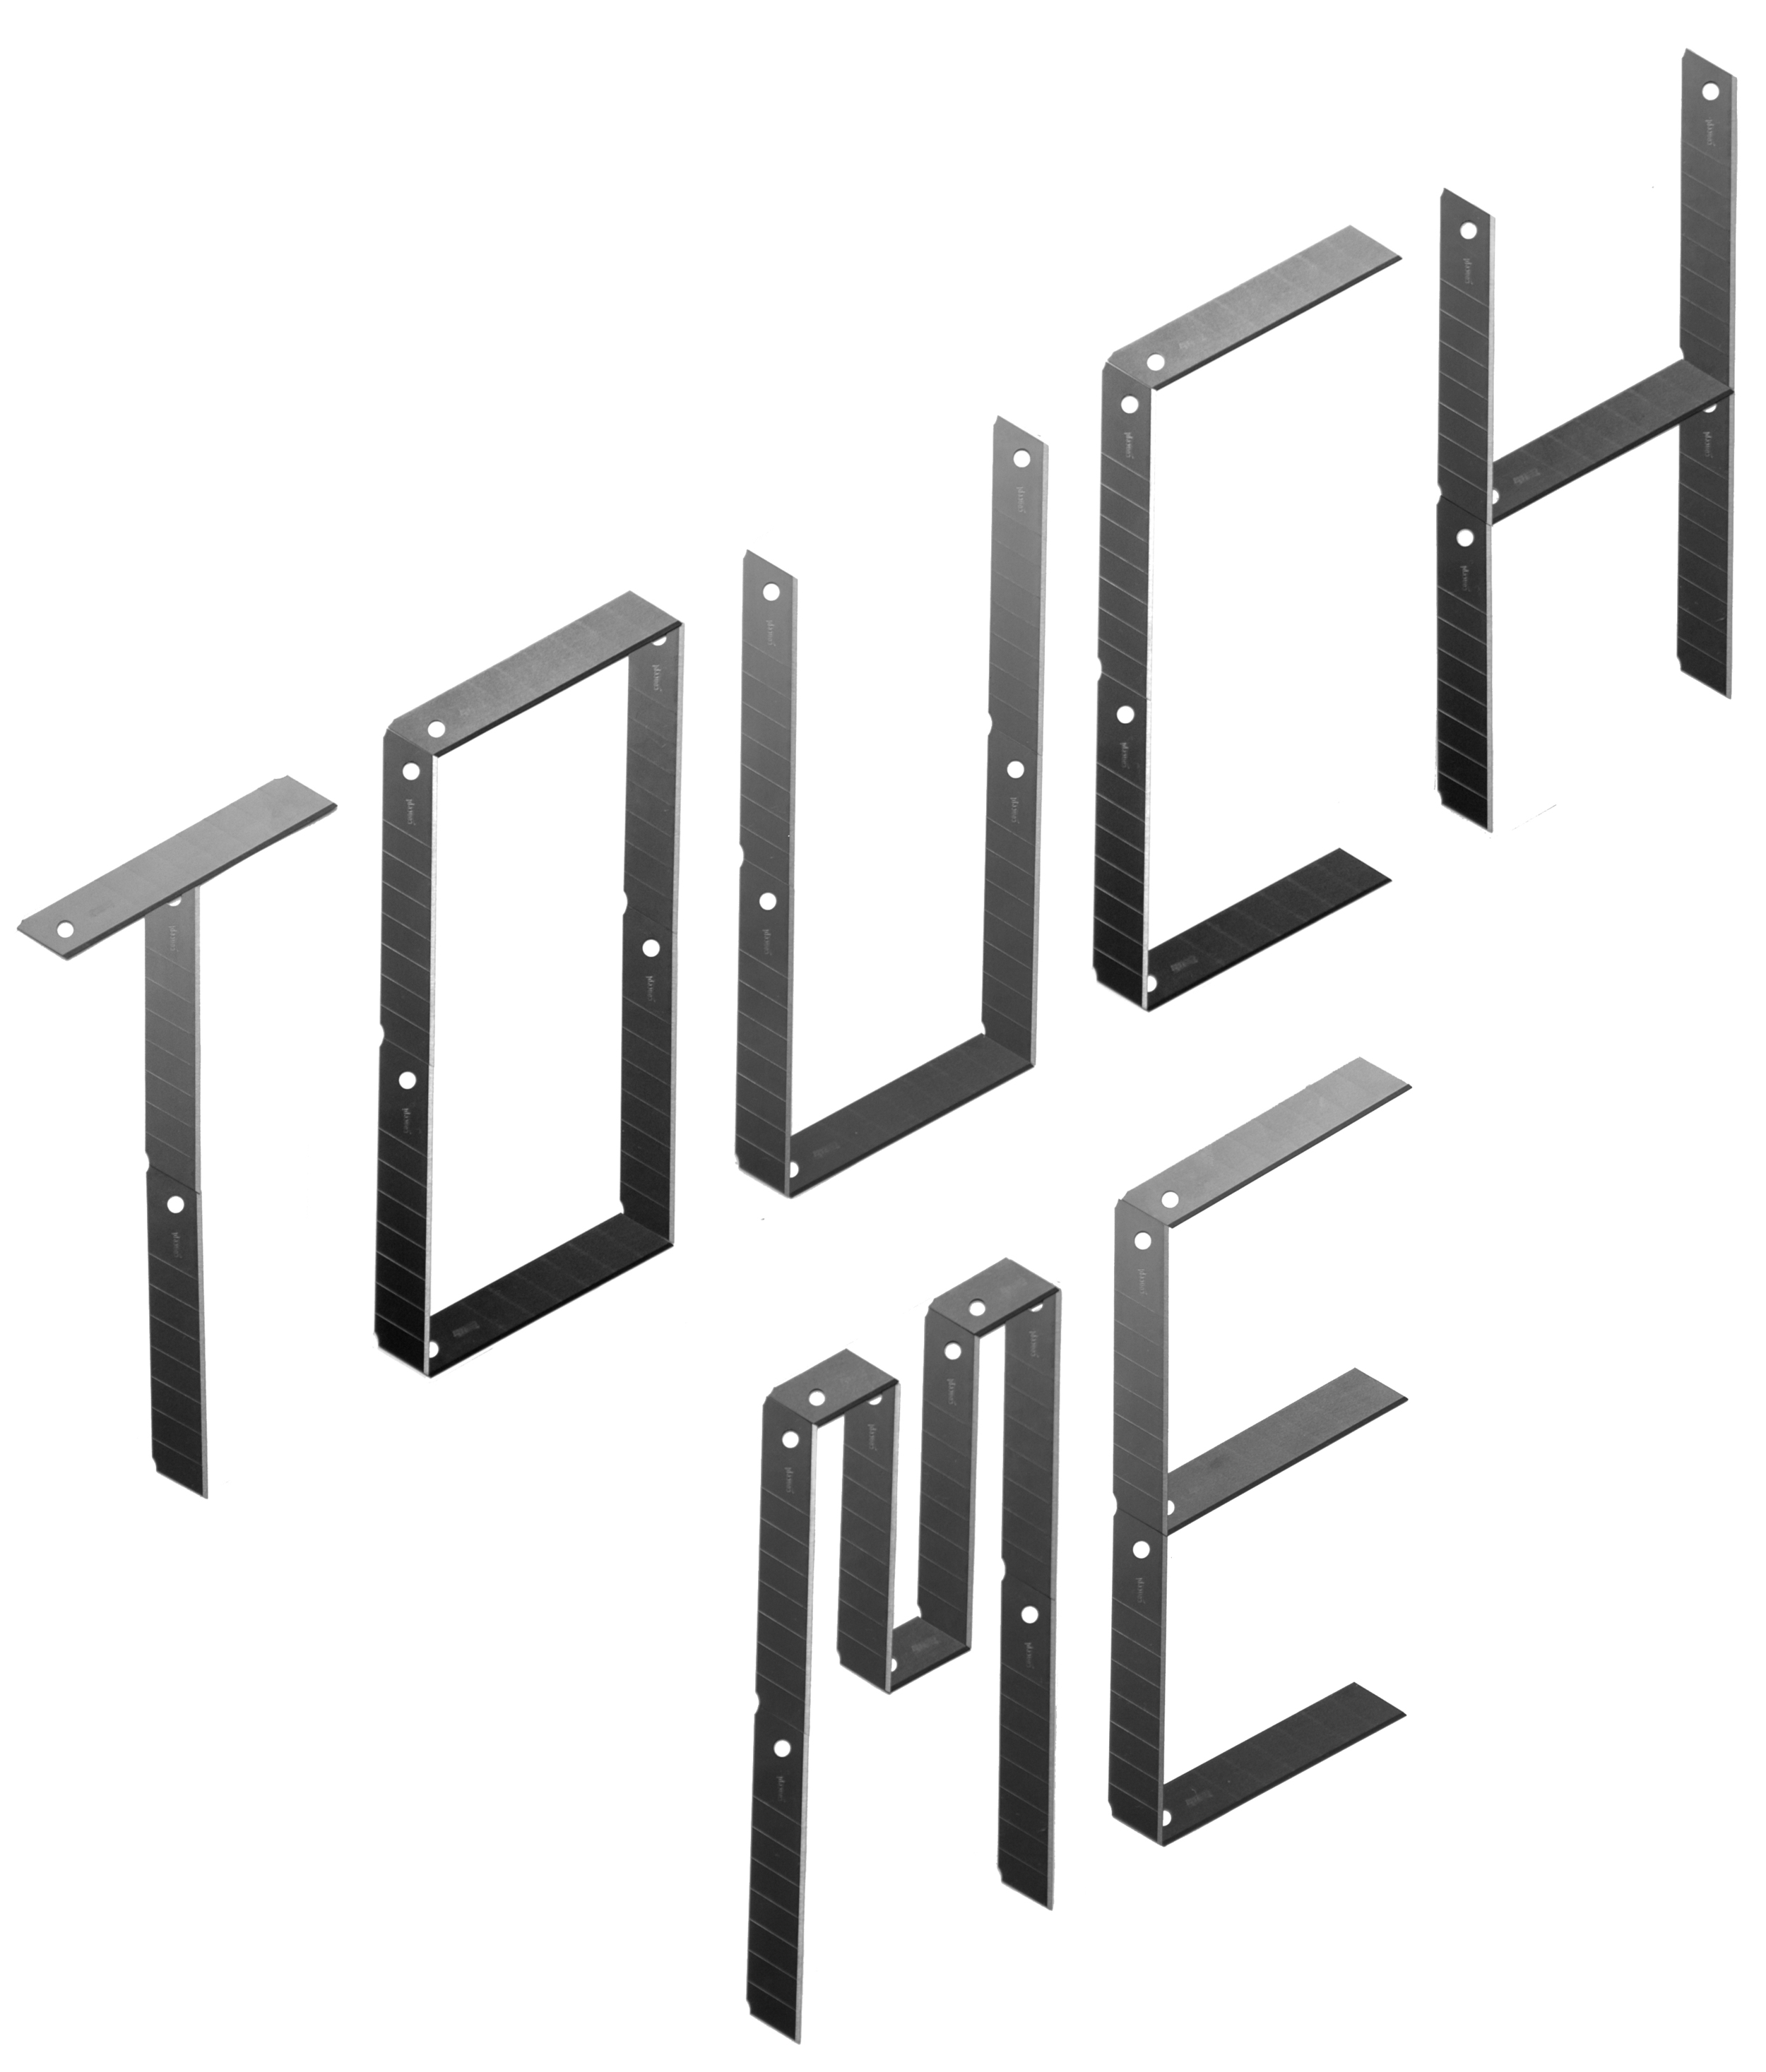 touch me.jpg